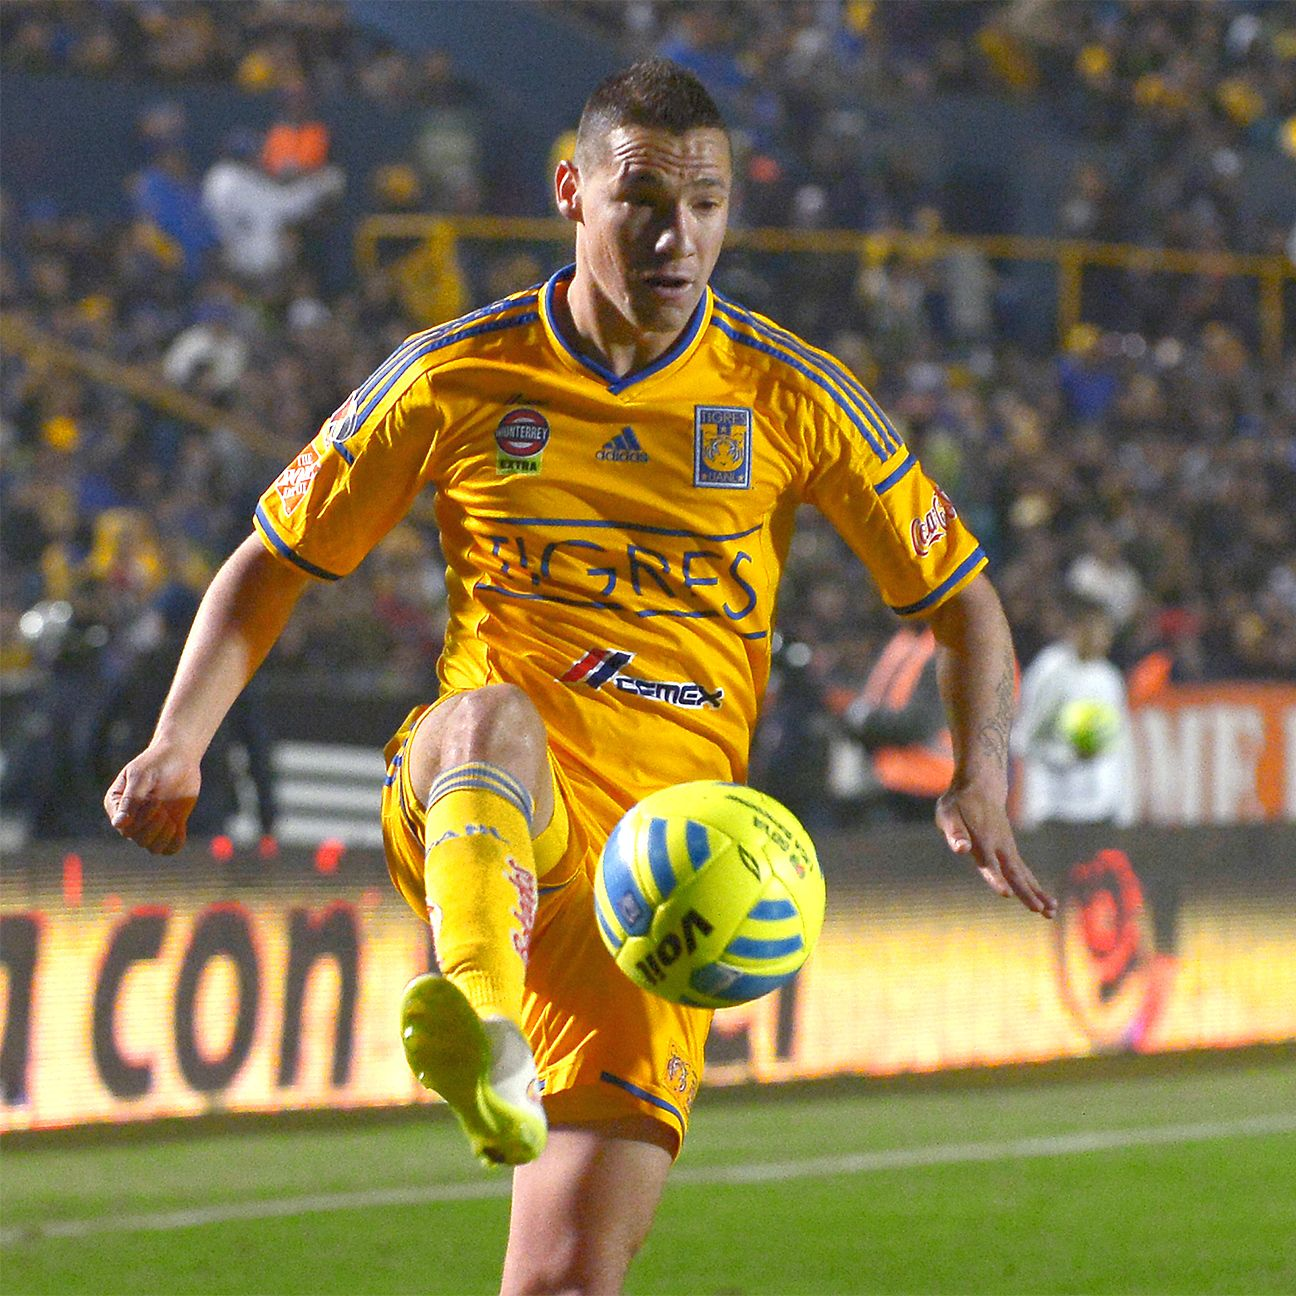 A rare goal from defensive midfielder Jesus Duenas helped Tigres crush Pumas.